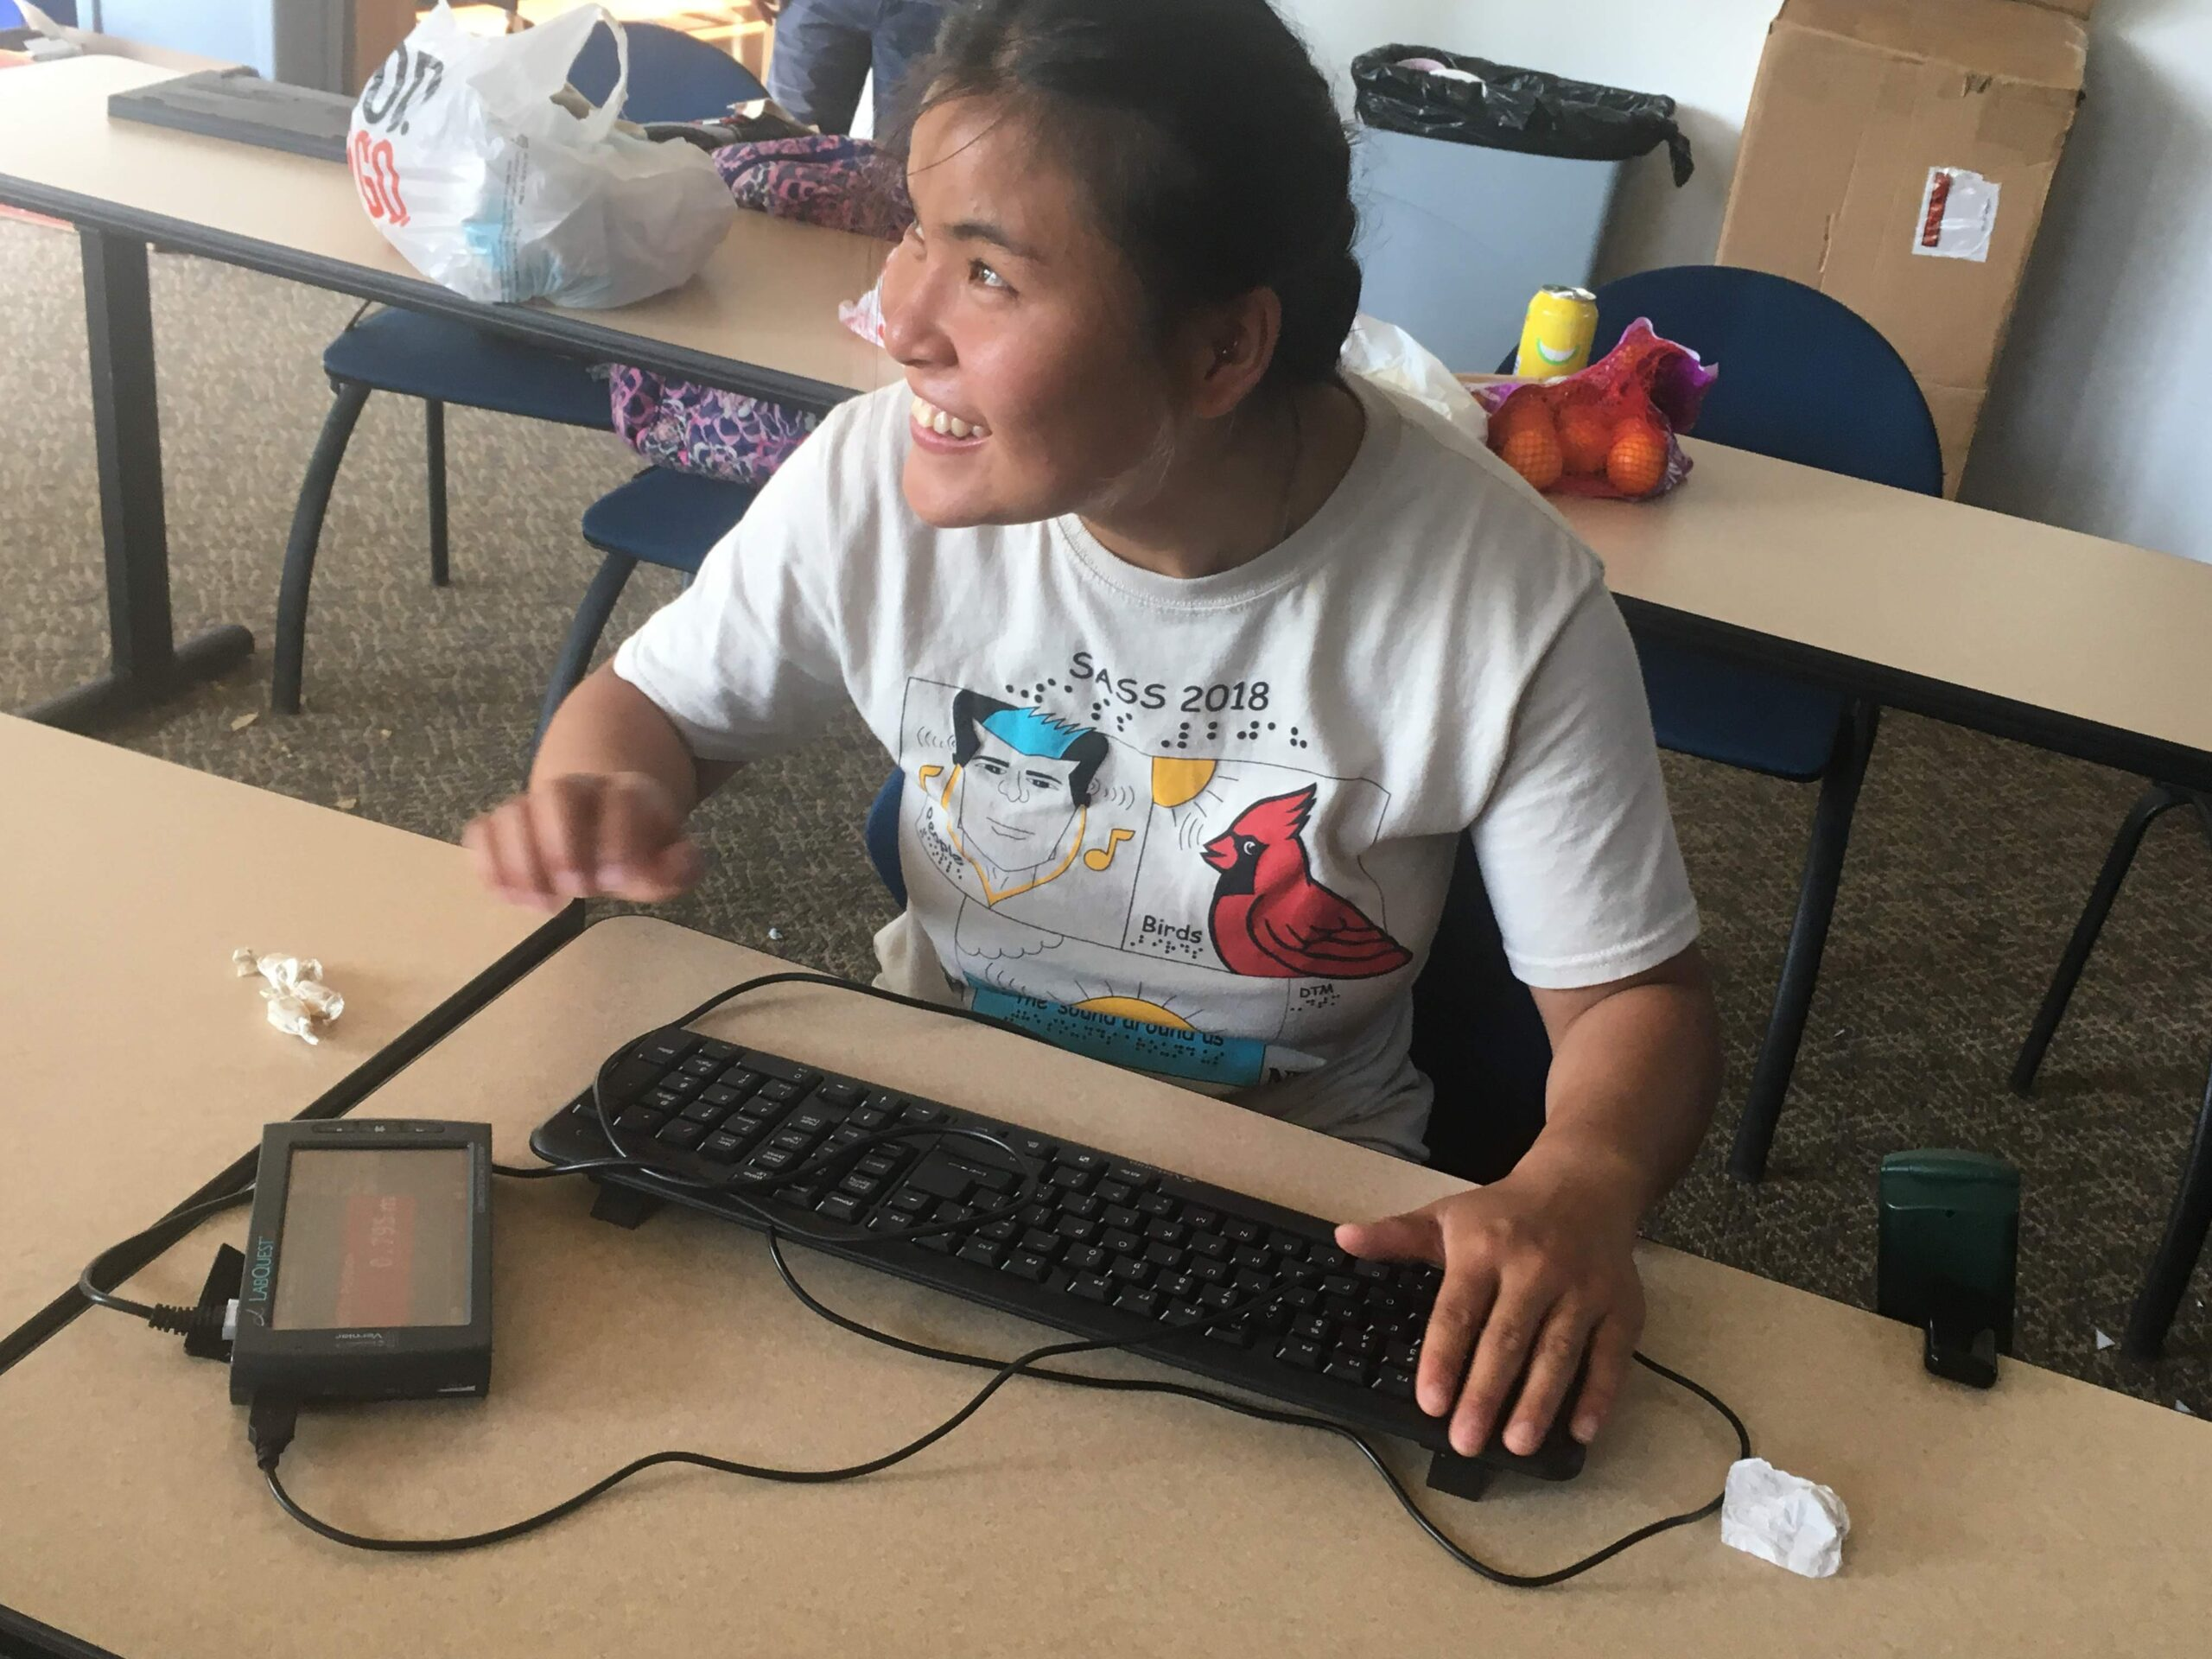 A student has a huge smile on her face while using the motion sensor with hand movement